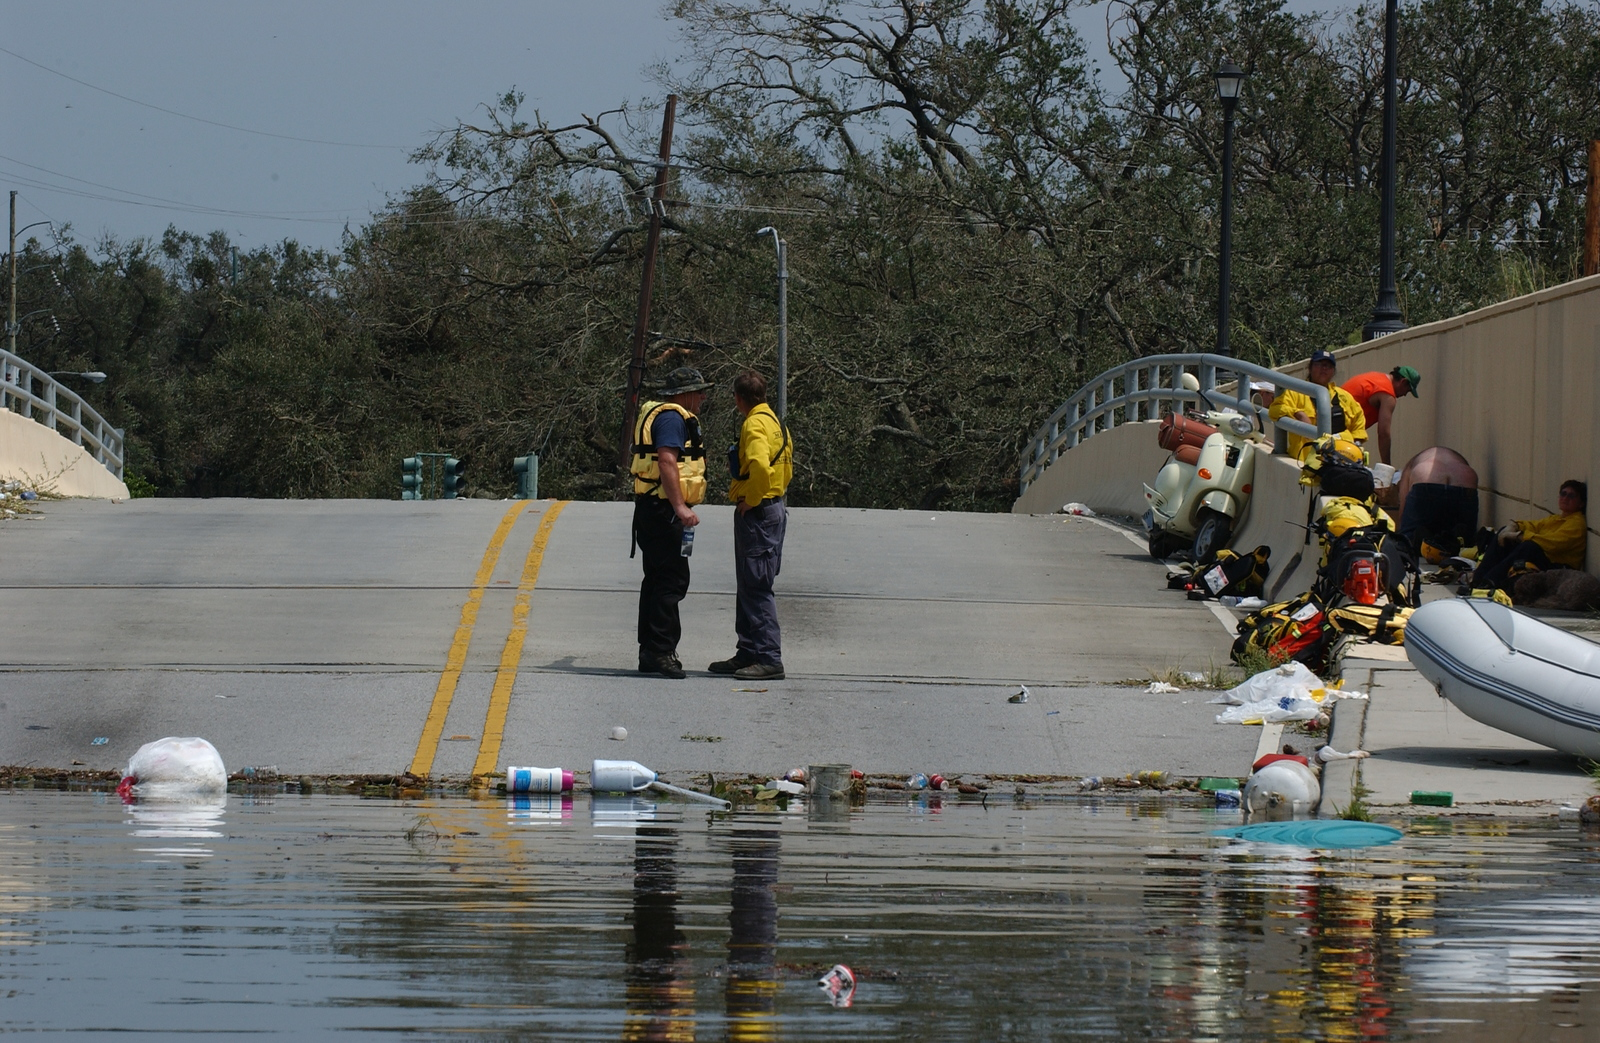 [Hurricane Katrina] New Orleans, LA, August 30, 2005 -- FEMA Urban Search and Rescue workers plan operatons on a bridge that is one of the areas not flooded in a neighborhood where search and rescue operations continue as a result of Hurricane Katrina.  Jocelyn Augustino/FEMA